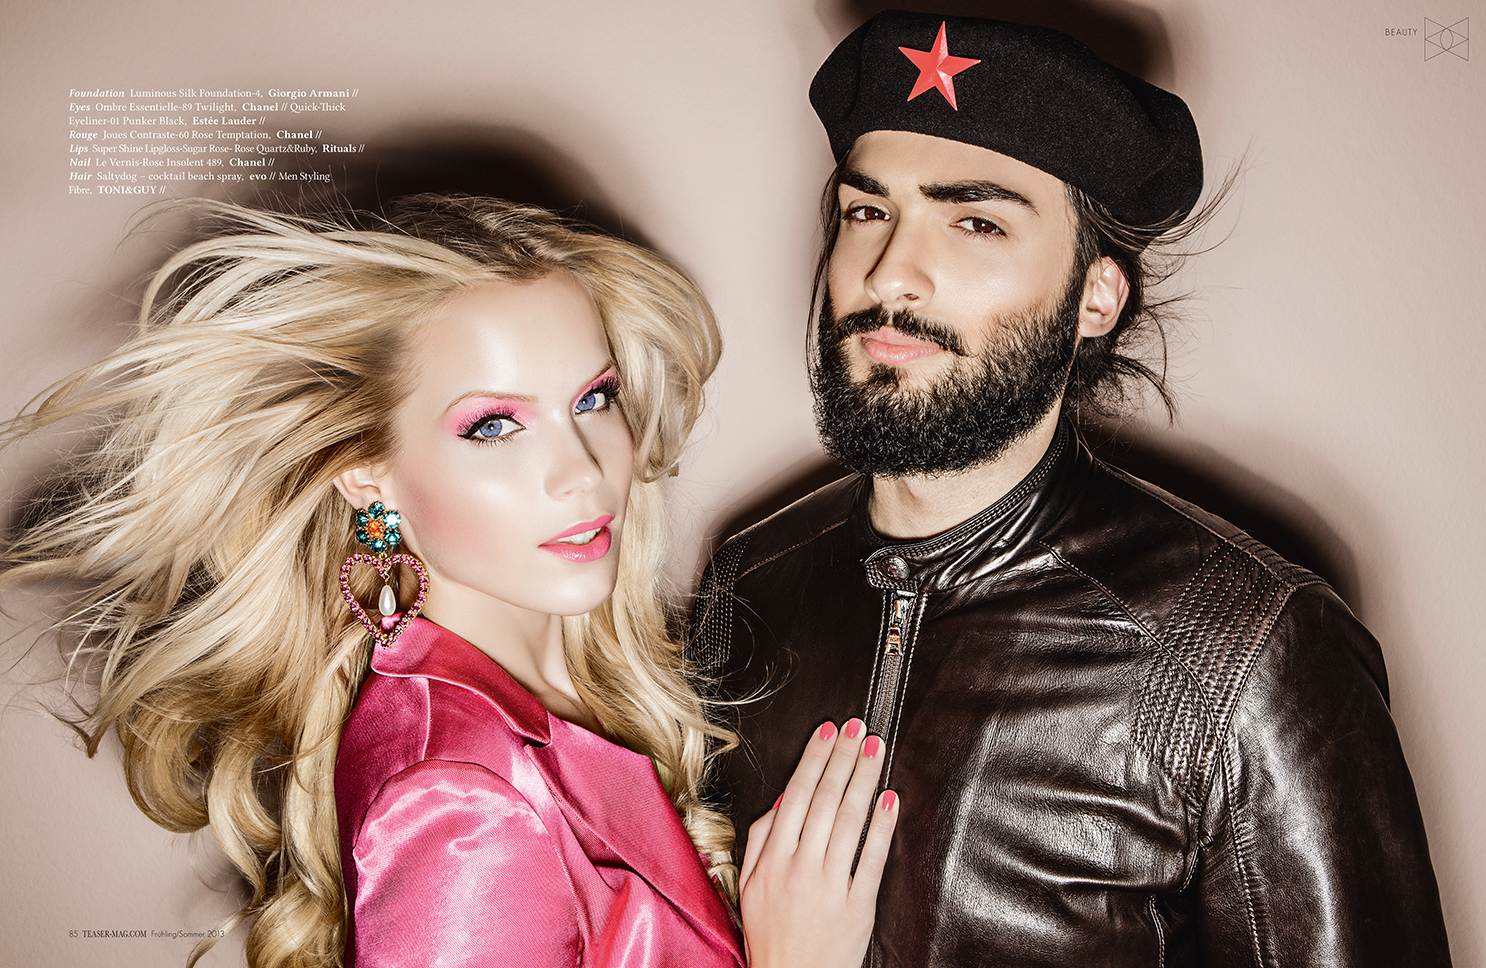 red star cap pink jacket blond hair leather jacket